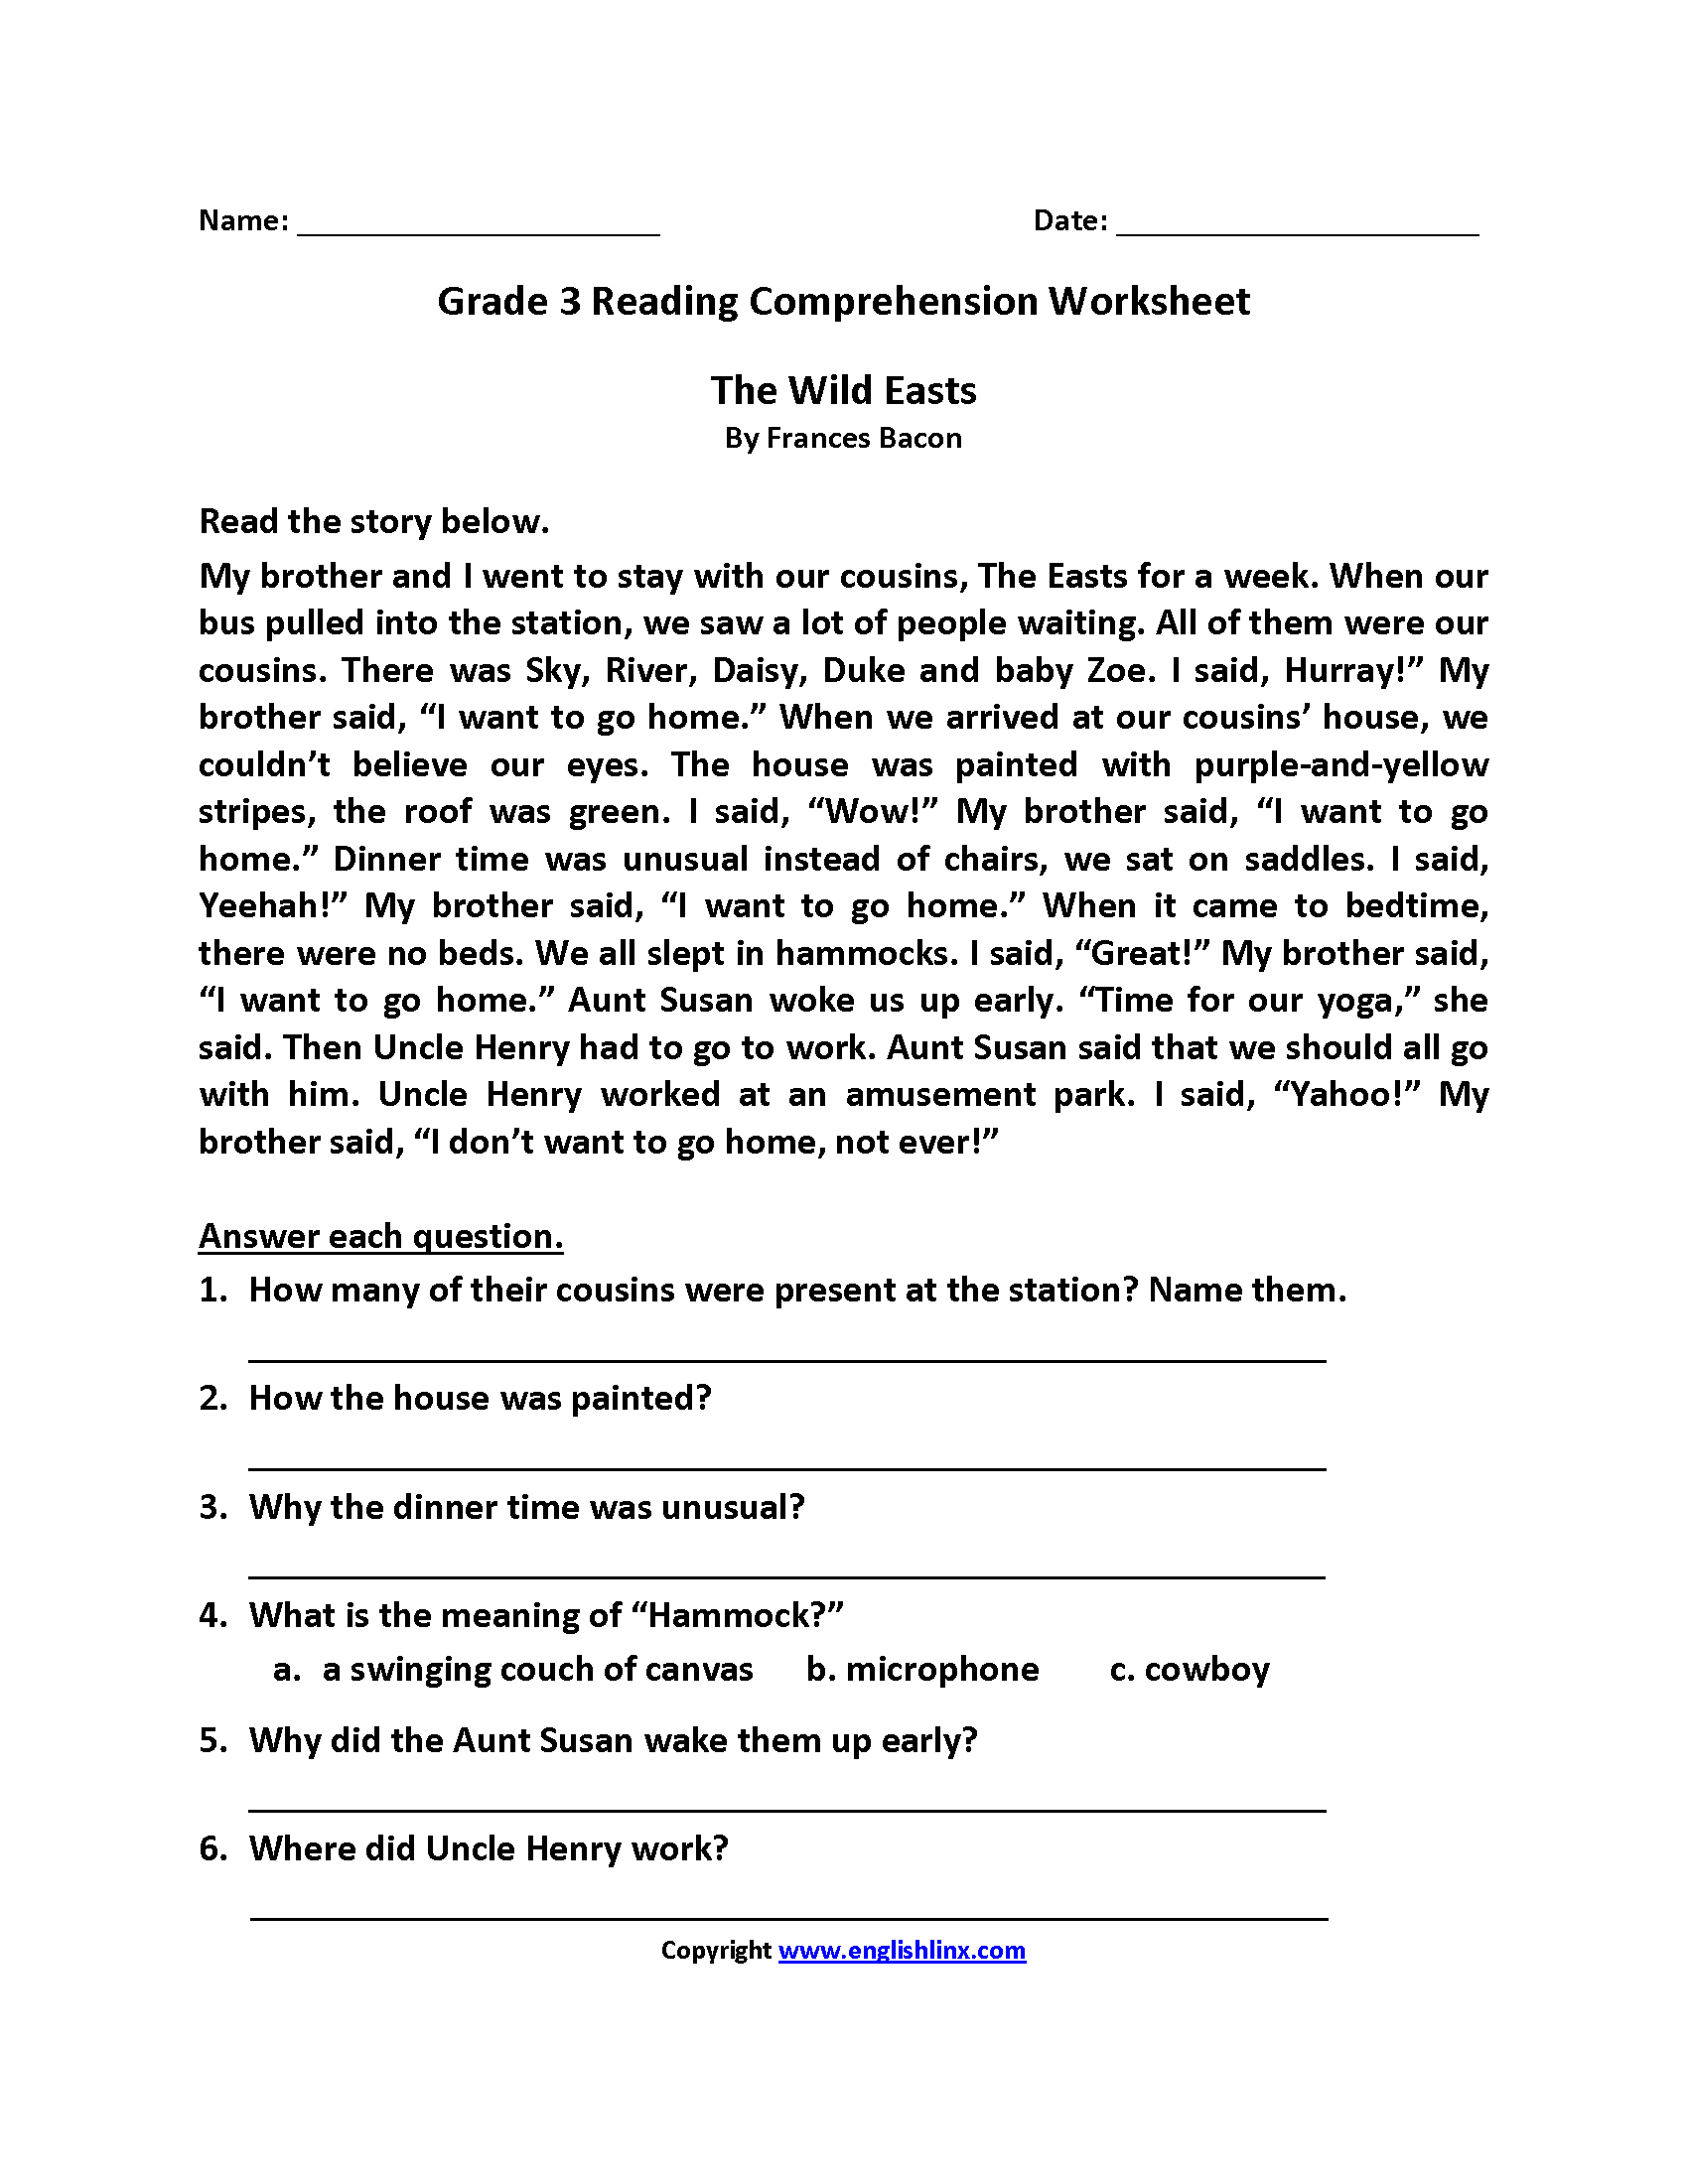 Wild Easts Third Grade Reading Worksheets durre maknoon